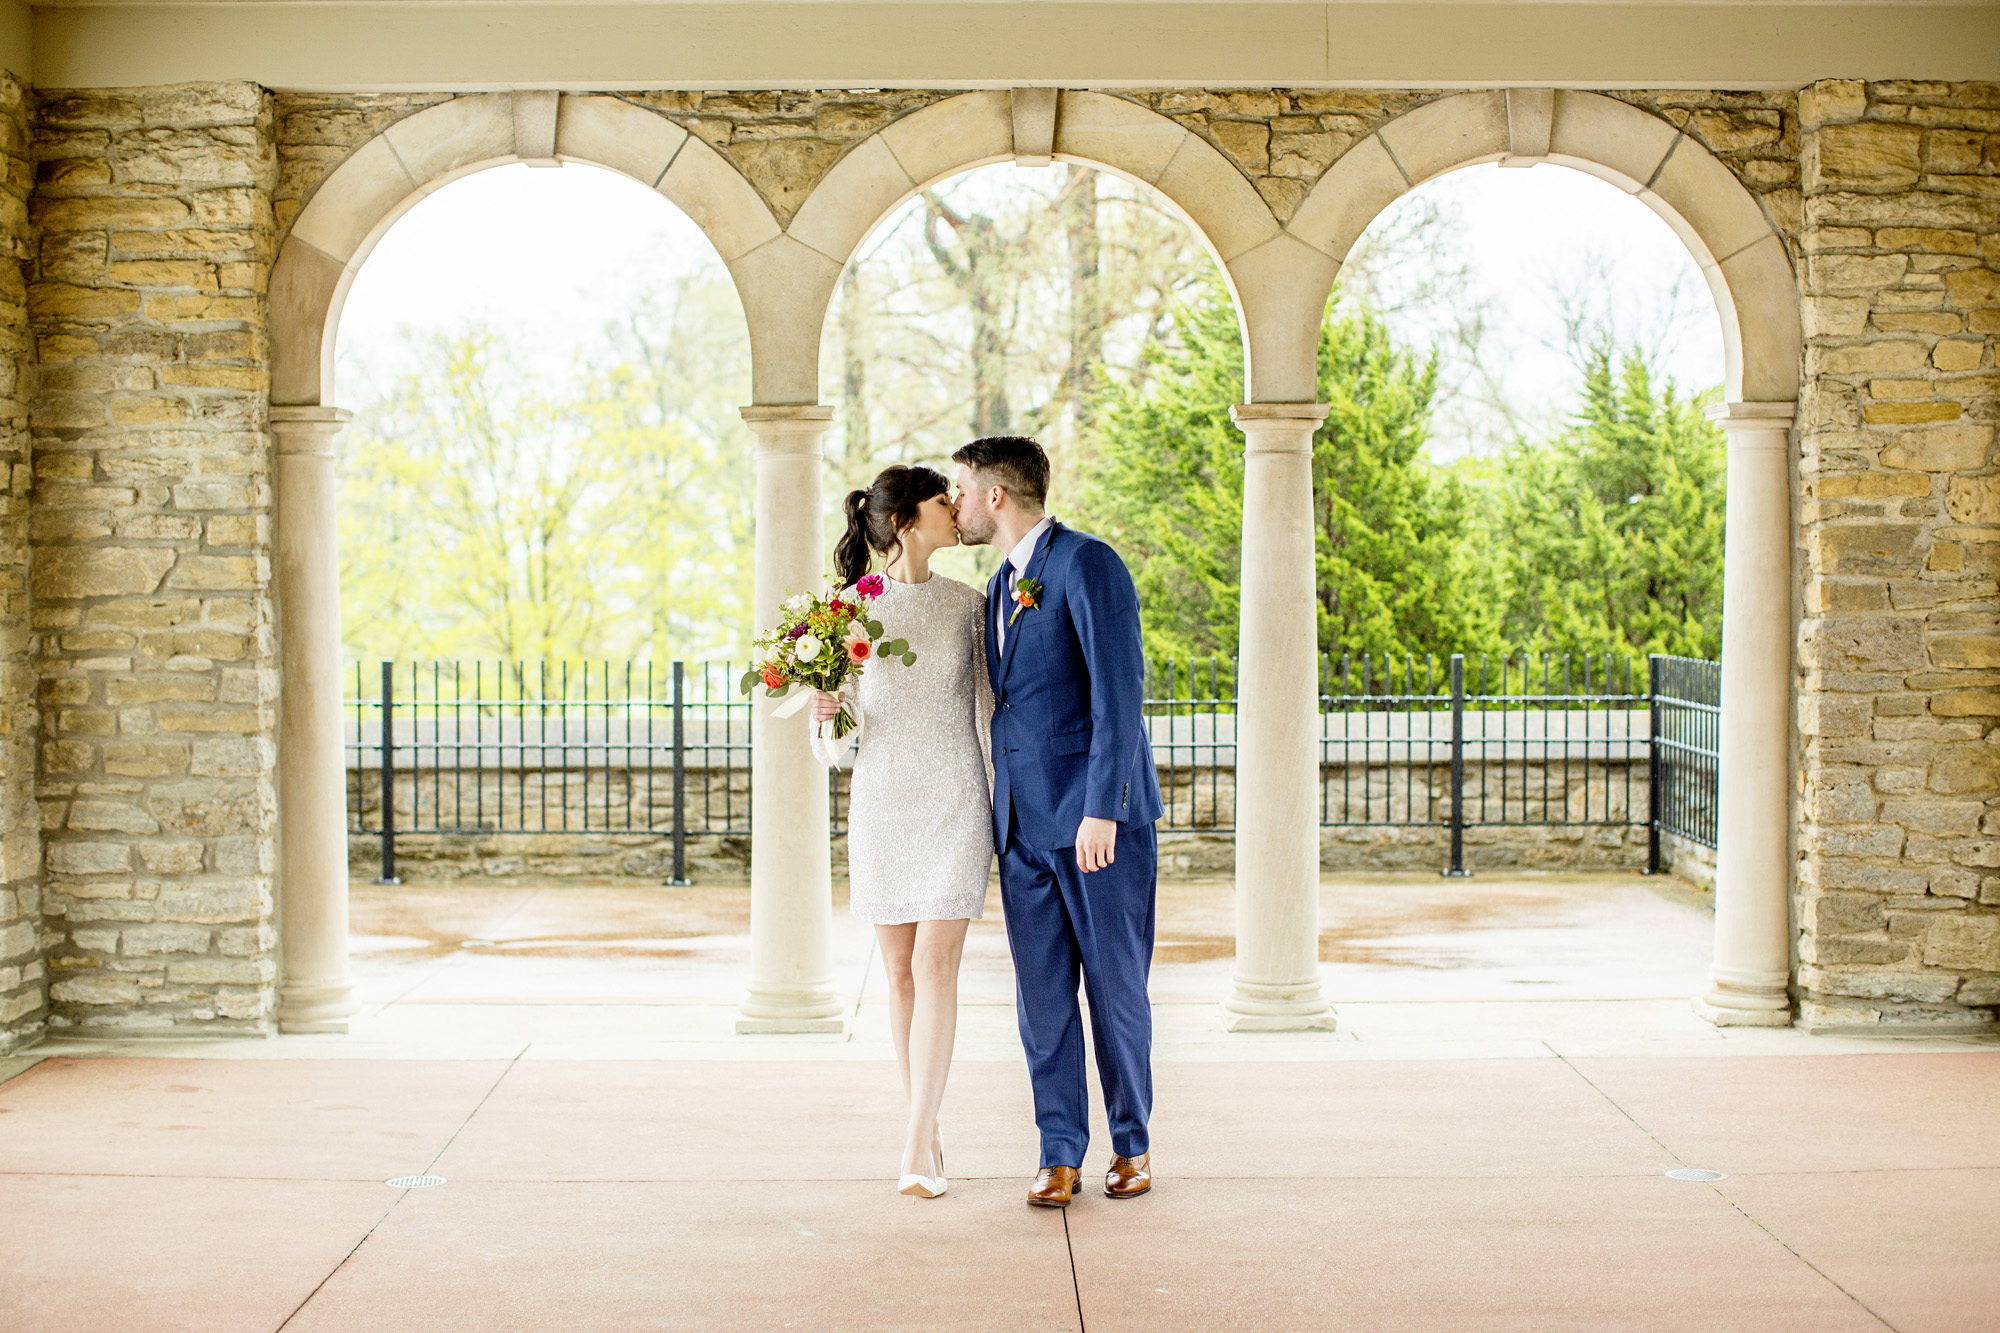 Seriously_Sabrina_Photography_Cincinnati_Ohio_Alms_Park_Elopement_Lauren_Aaron_31.jpg